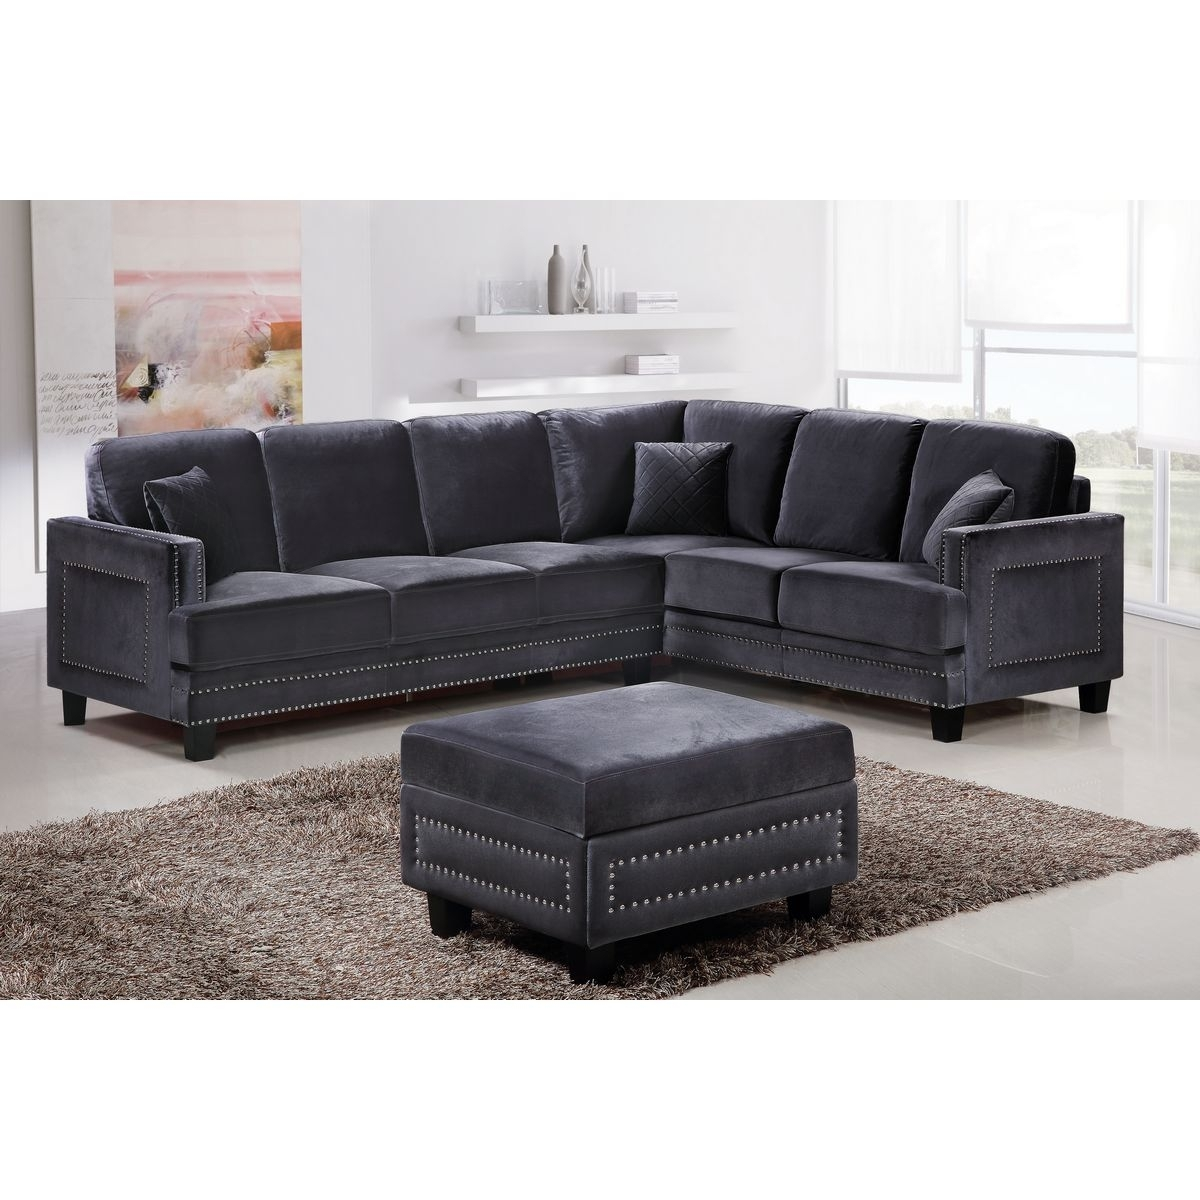 Sectional Sofa With Nailhead Trim Meridian Furniture 655Gry Ferrara With Sectional Sofas With Nailhead Trim (View 10 of 10)